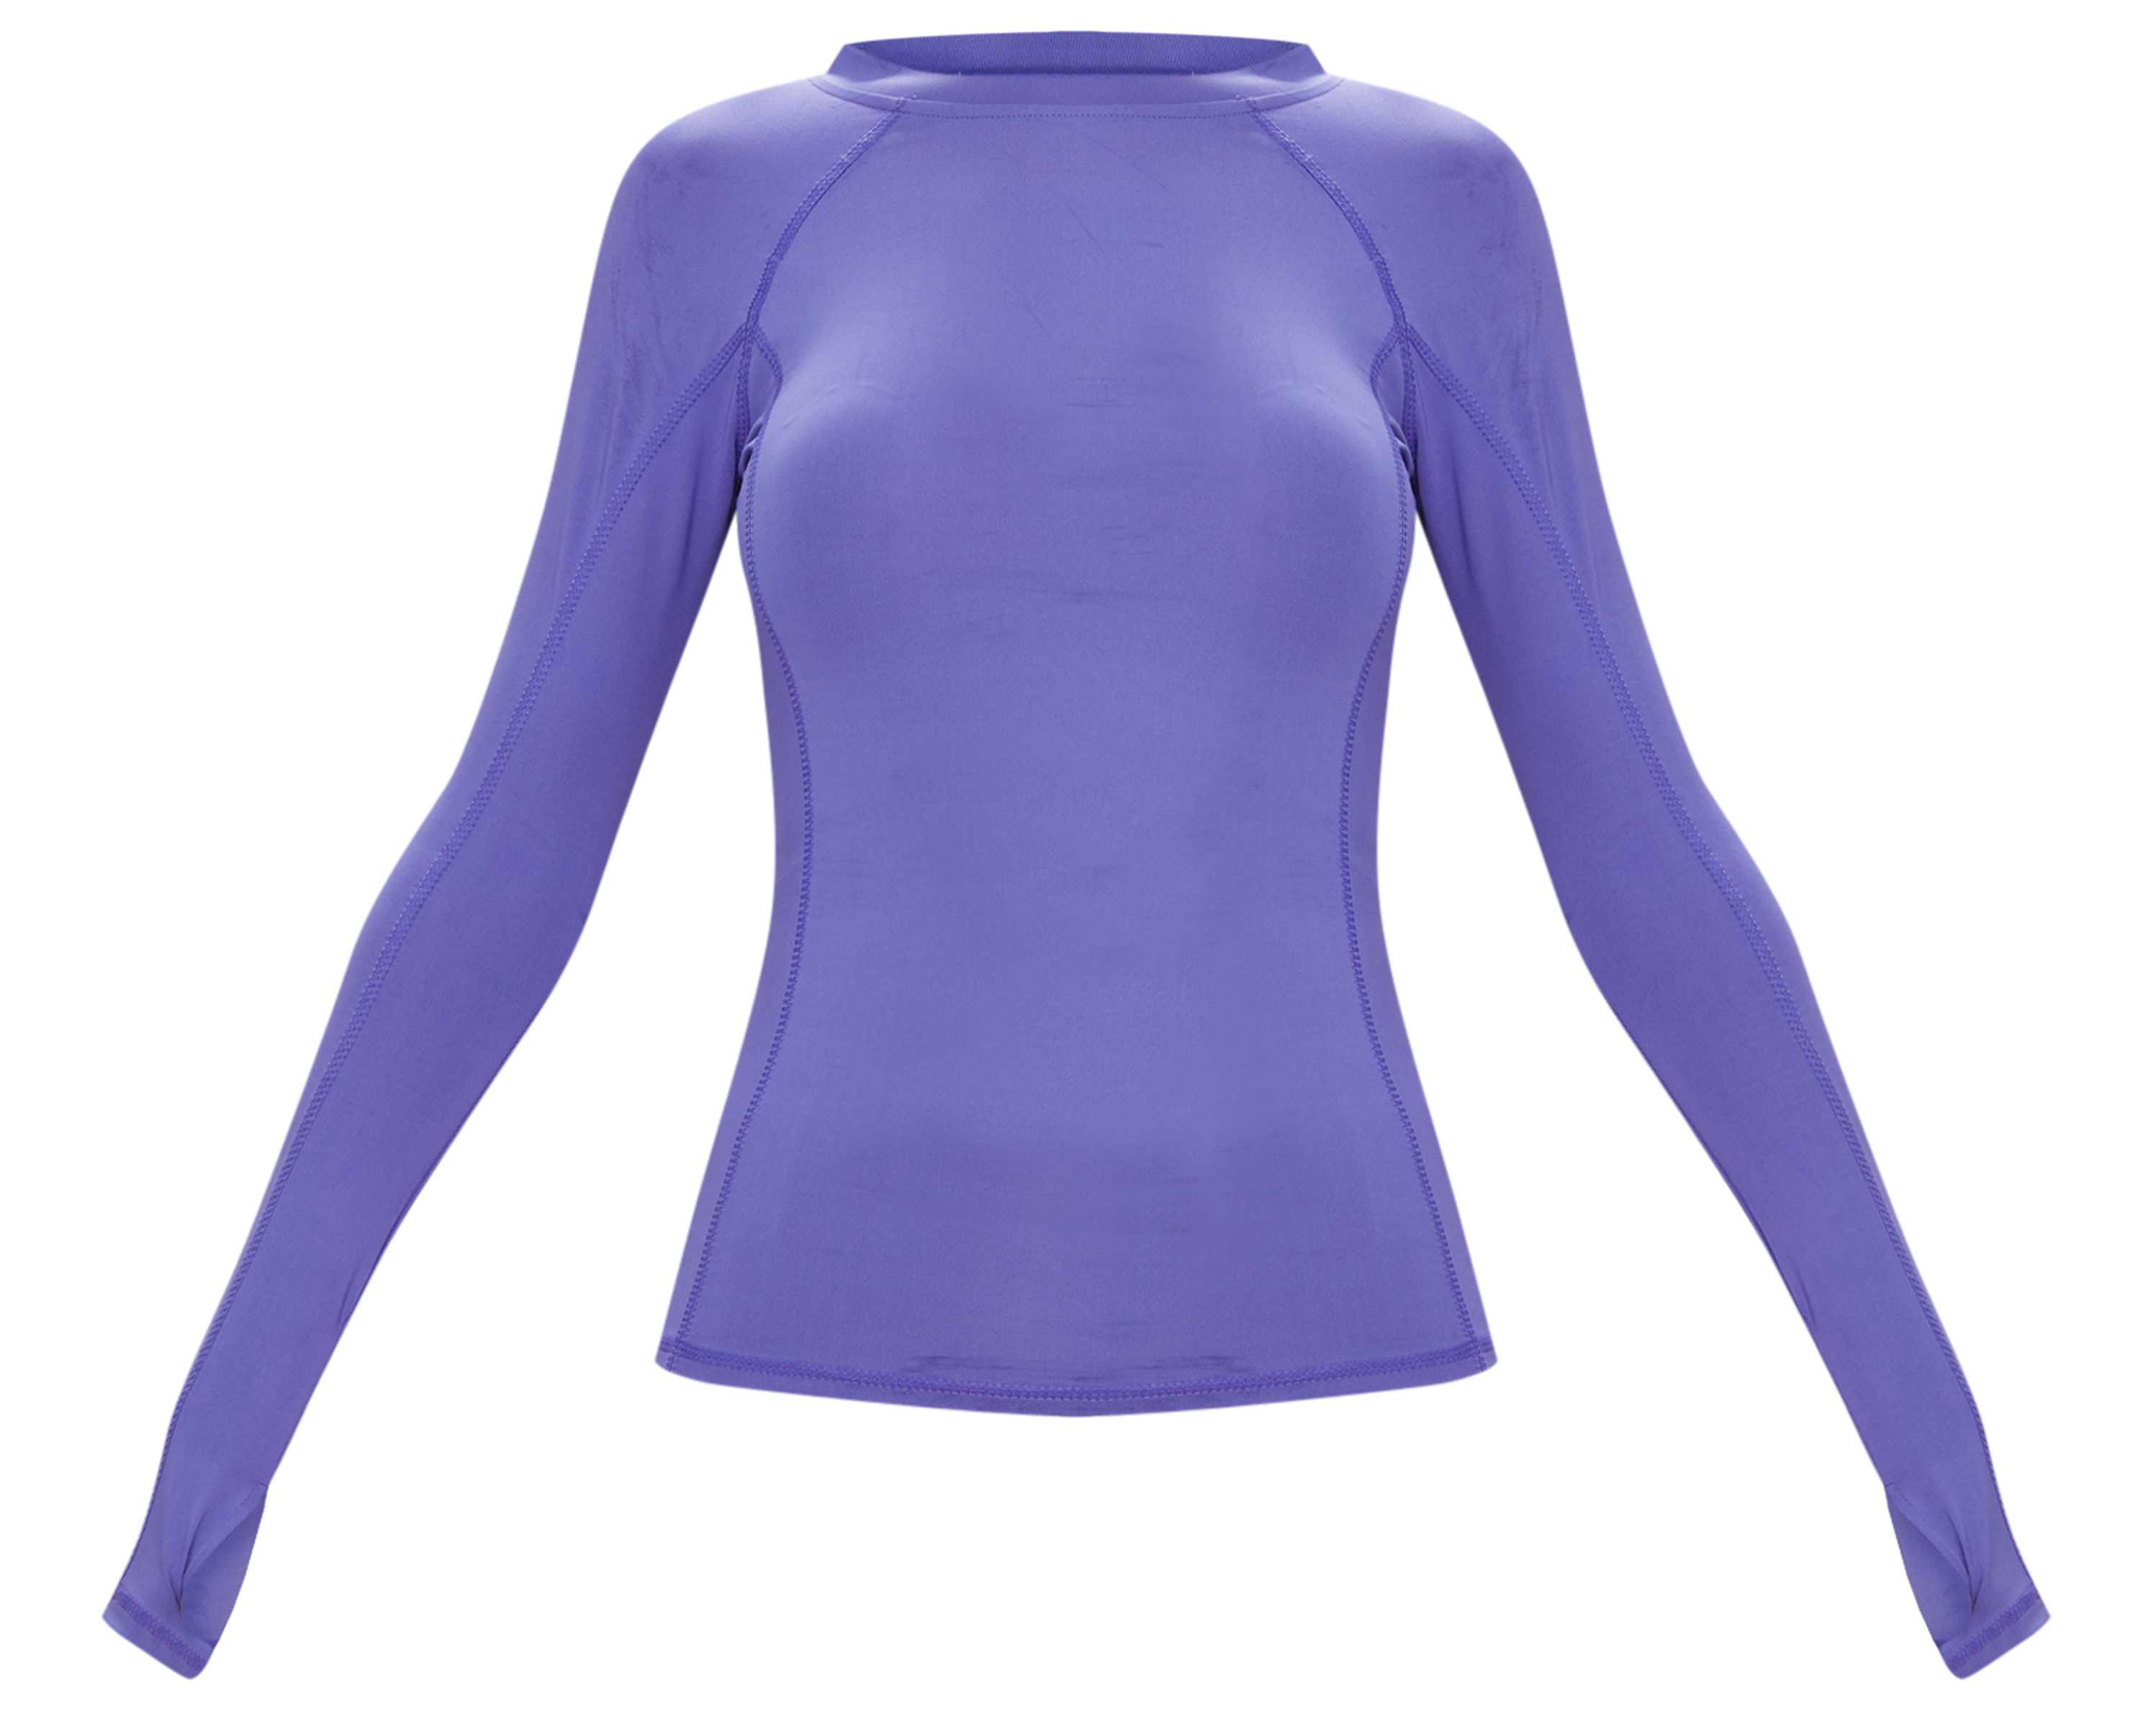 PrettyLittleThing Purple Long Sleeve Gym Top